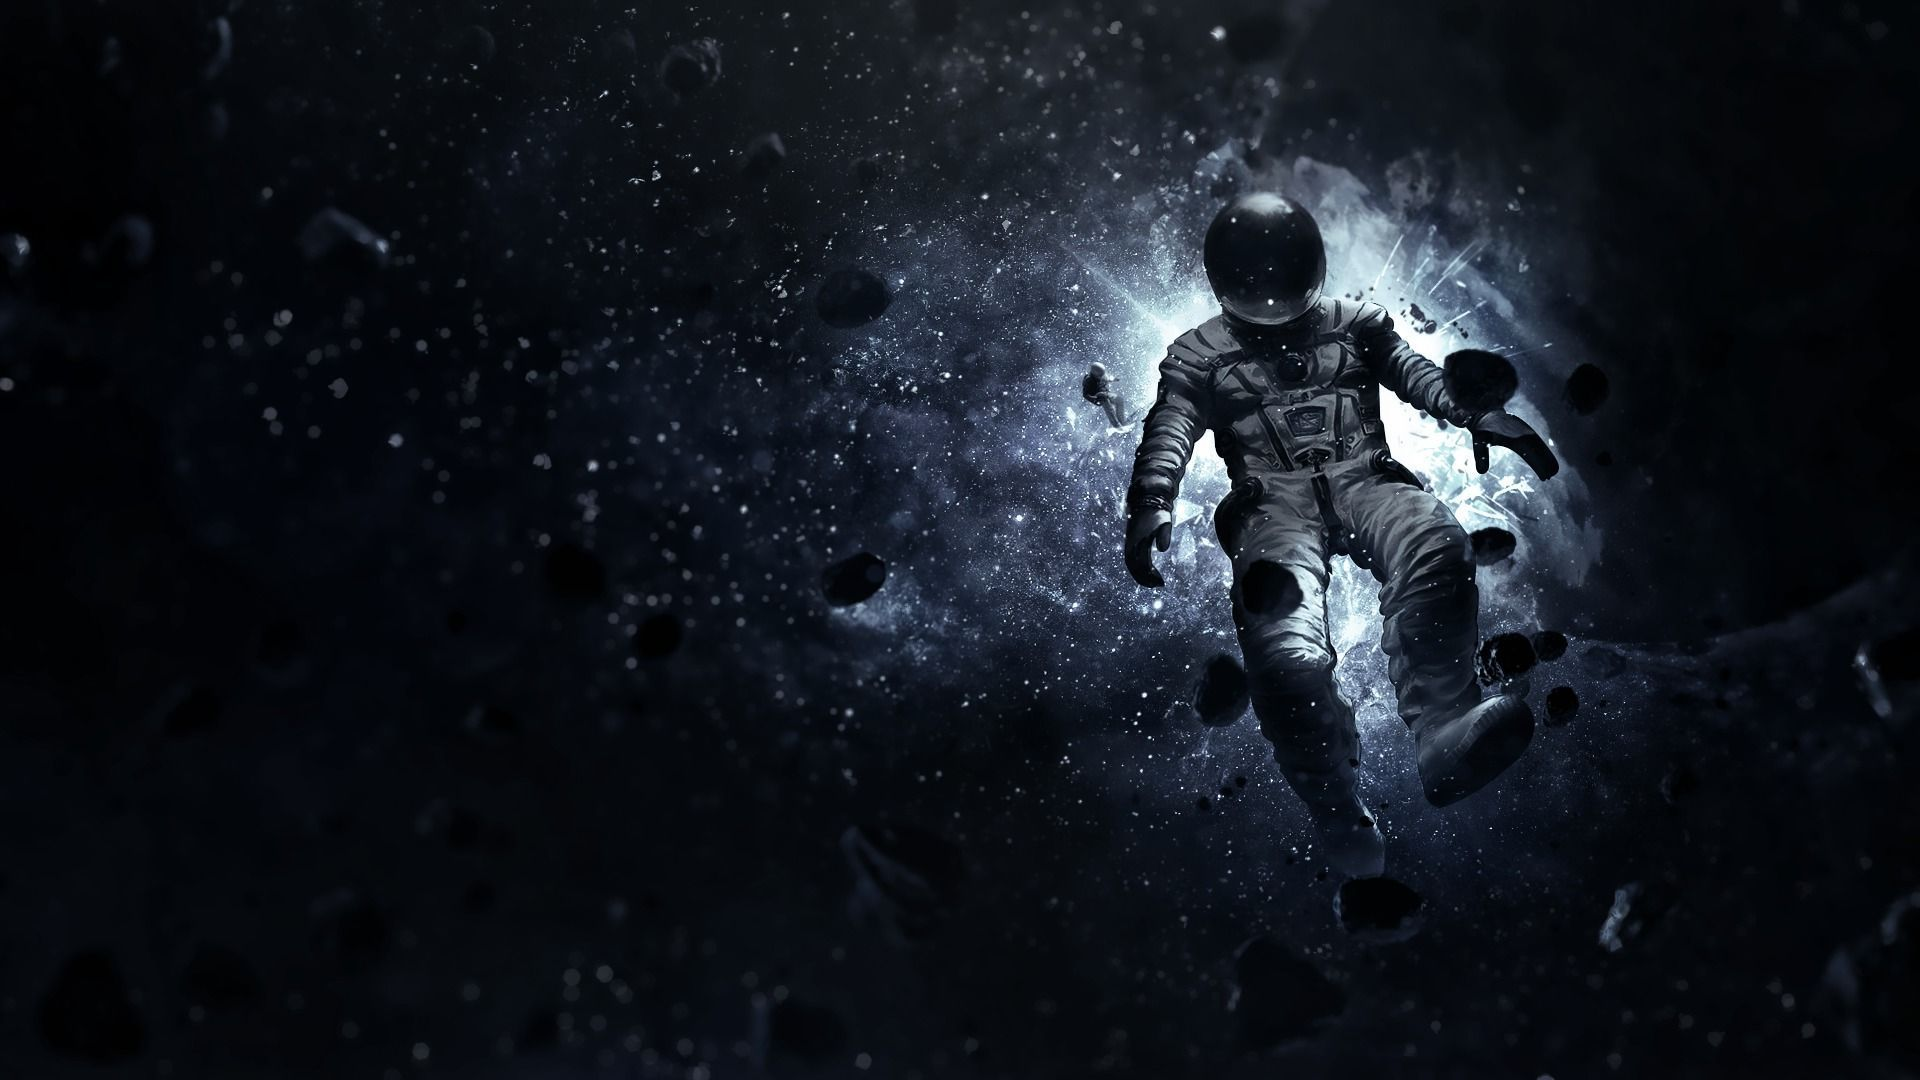 Astronaut Floating In Space Wallpaper Space Art Astronaut Art Astronaut Wallpaper